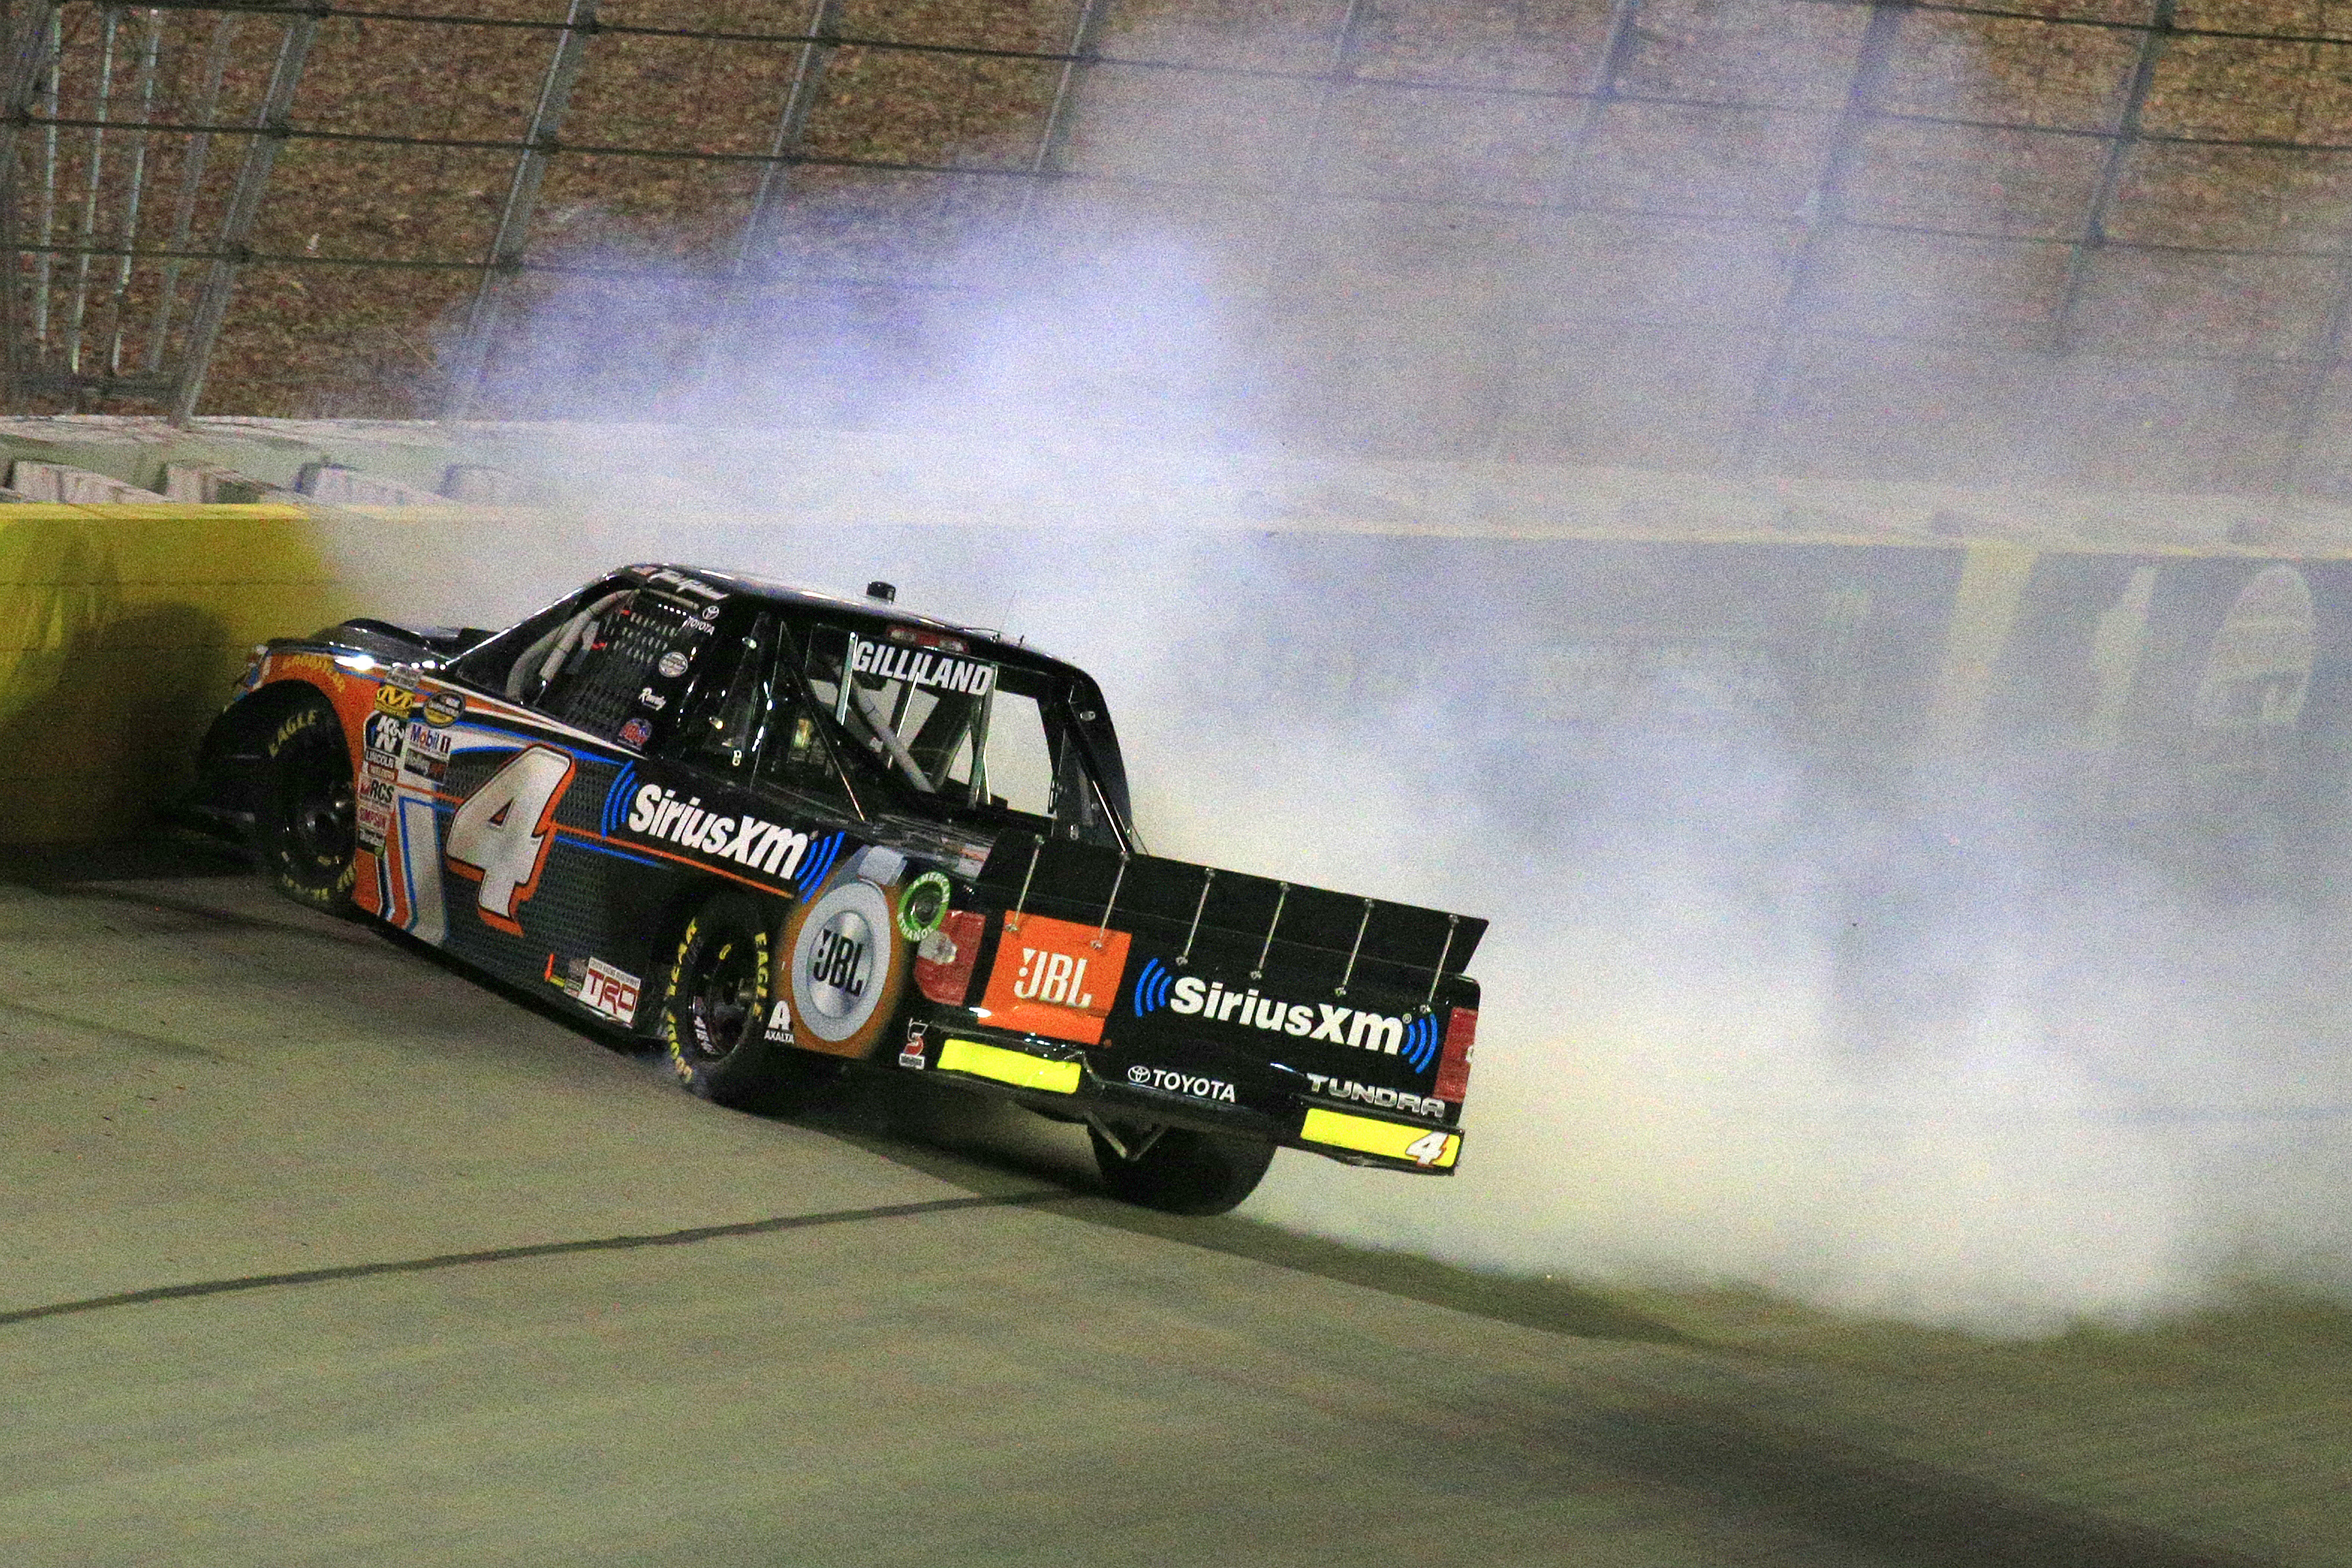 A mini pickup truck with smoke pouring out of its hood crashed into a wall on a race track.